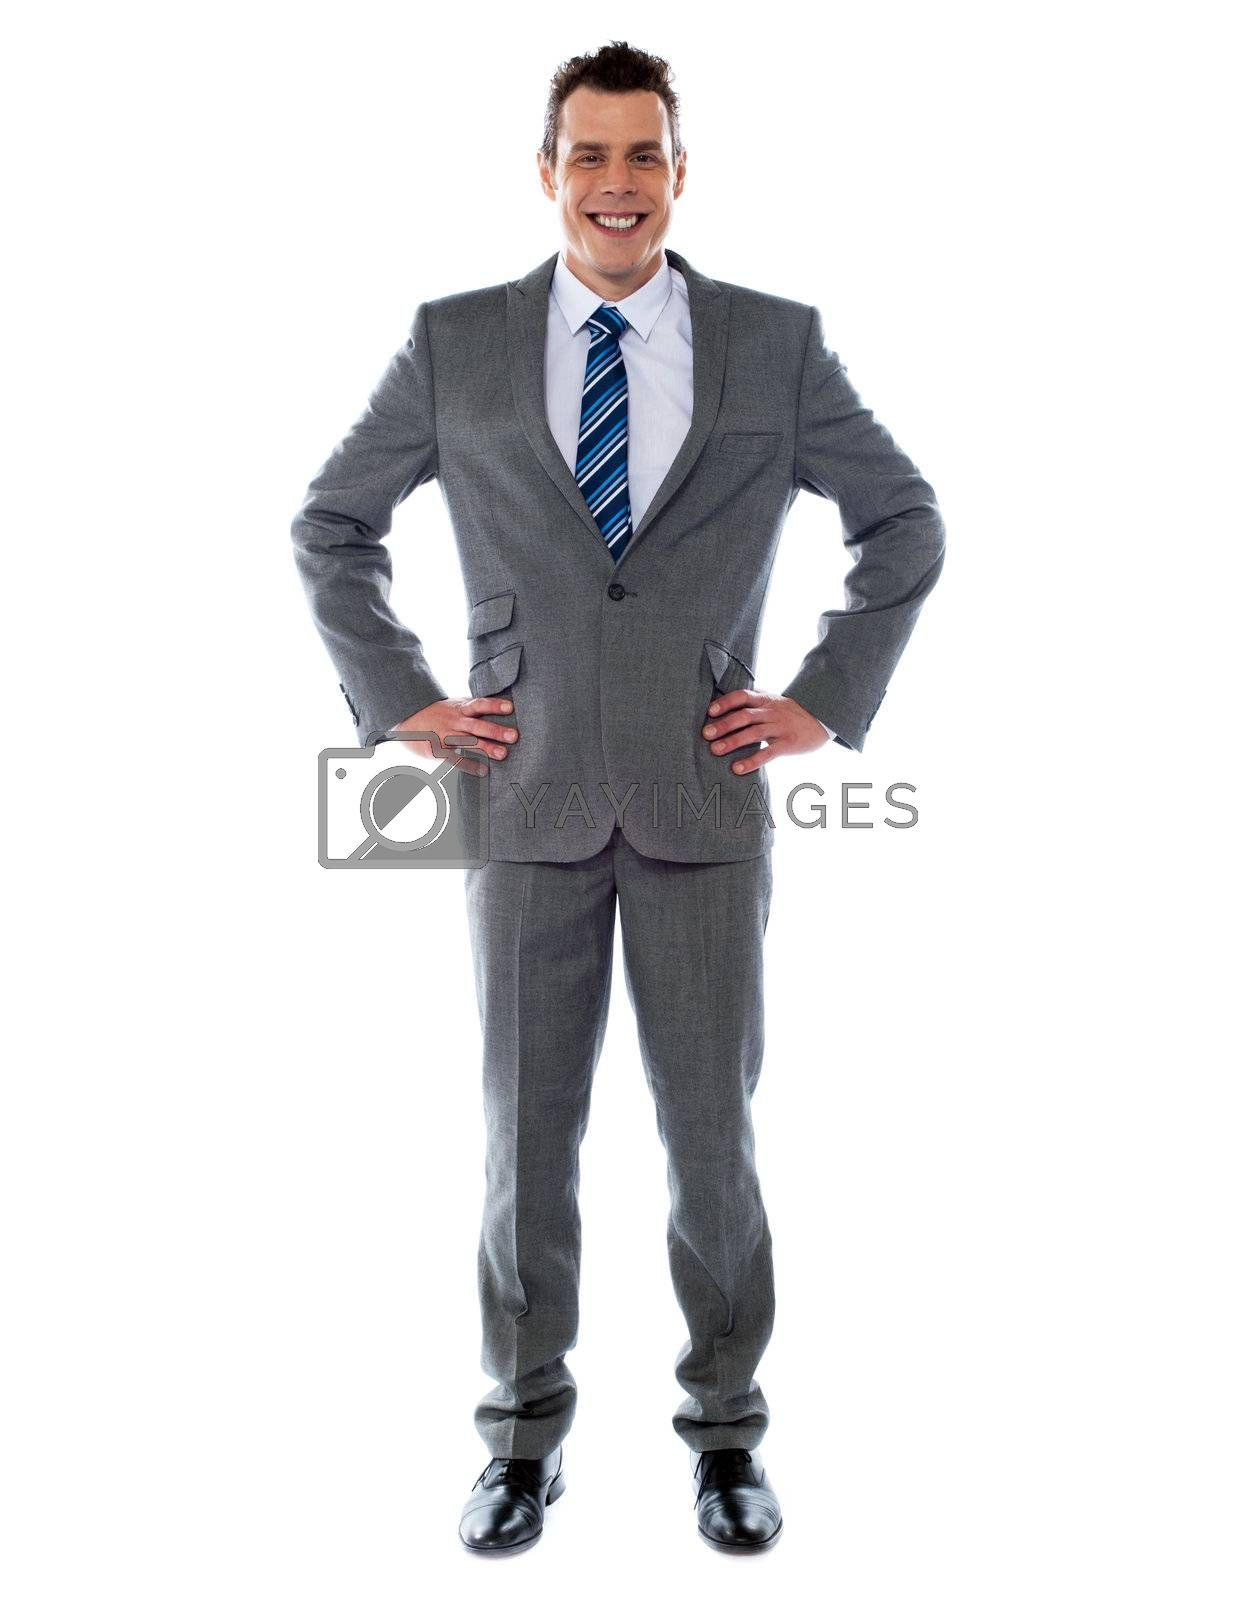 Confident young business executive poisng with hands on his waist, studio shot